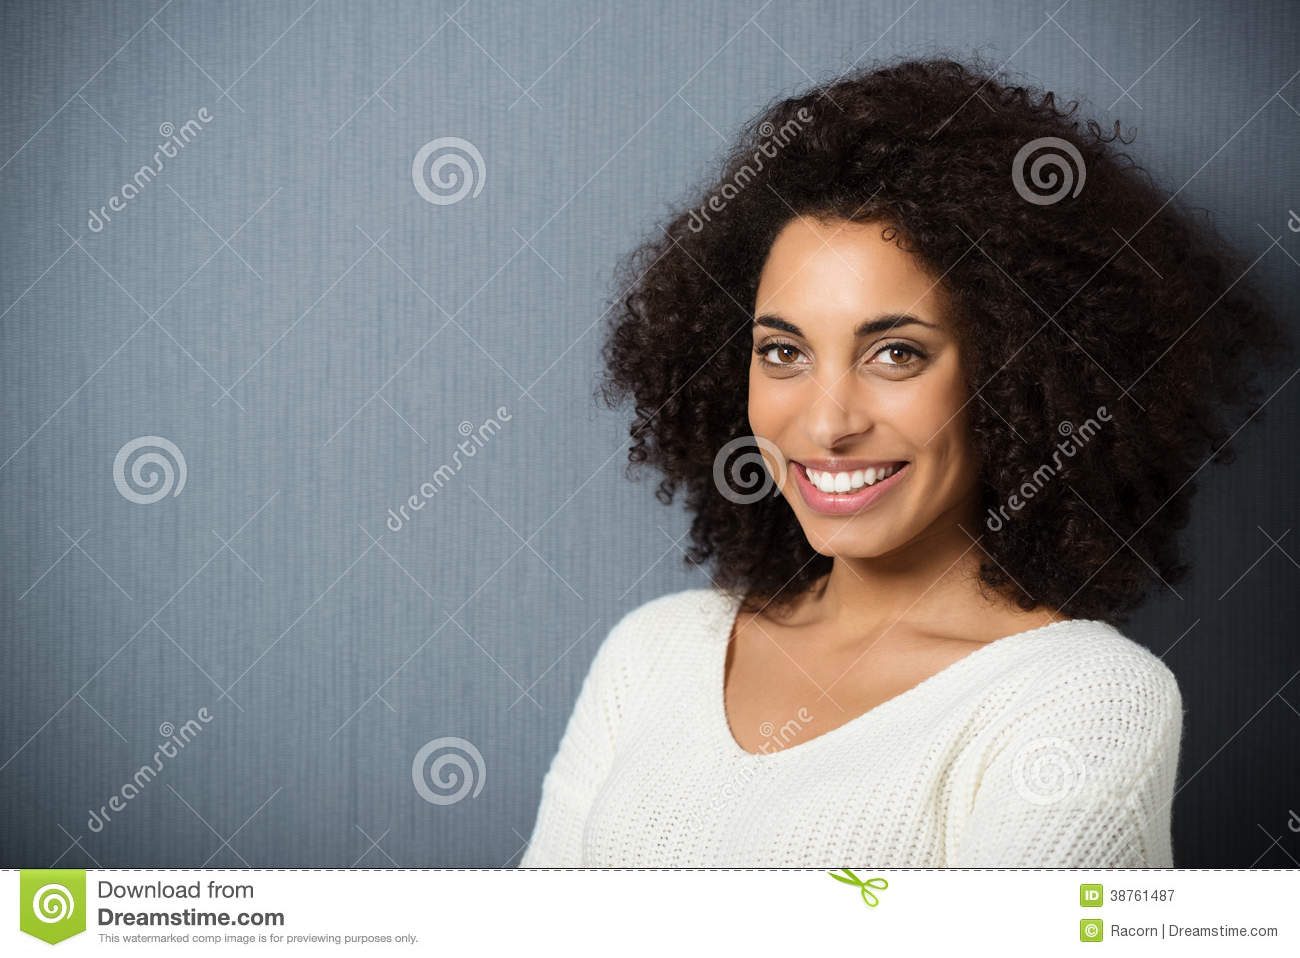 Looking Very For Friend Friendly Woman